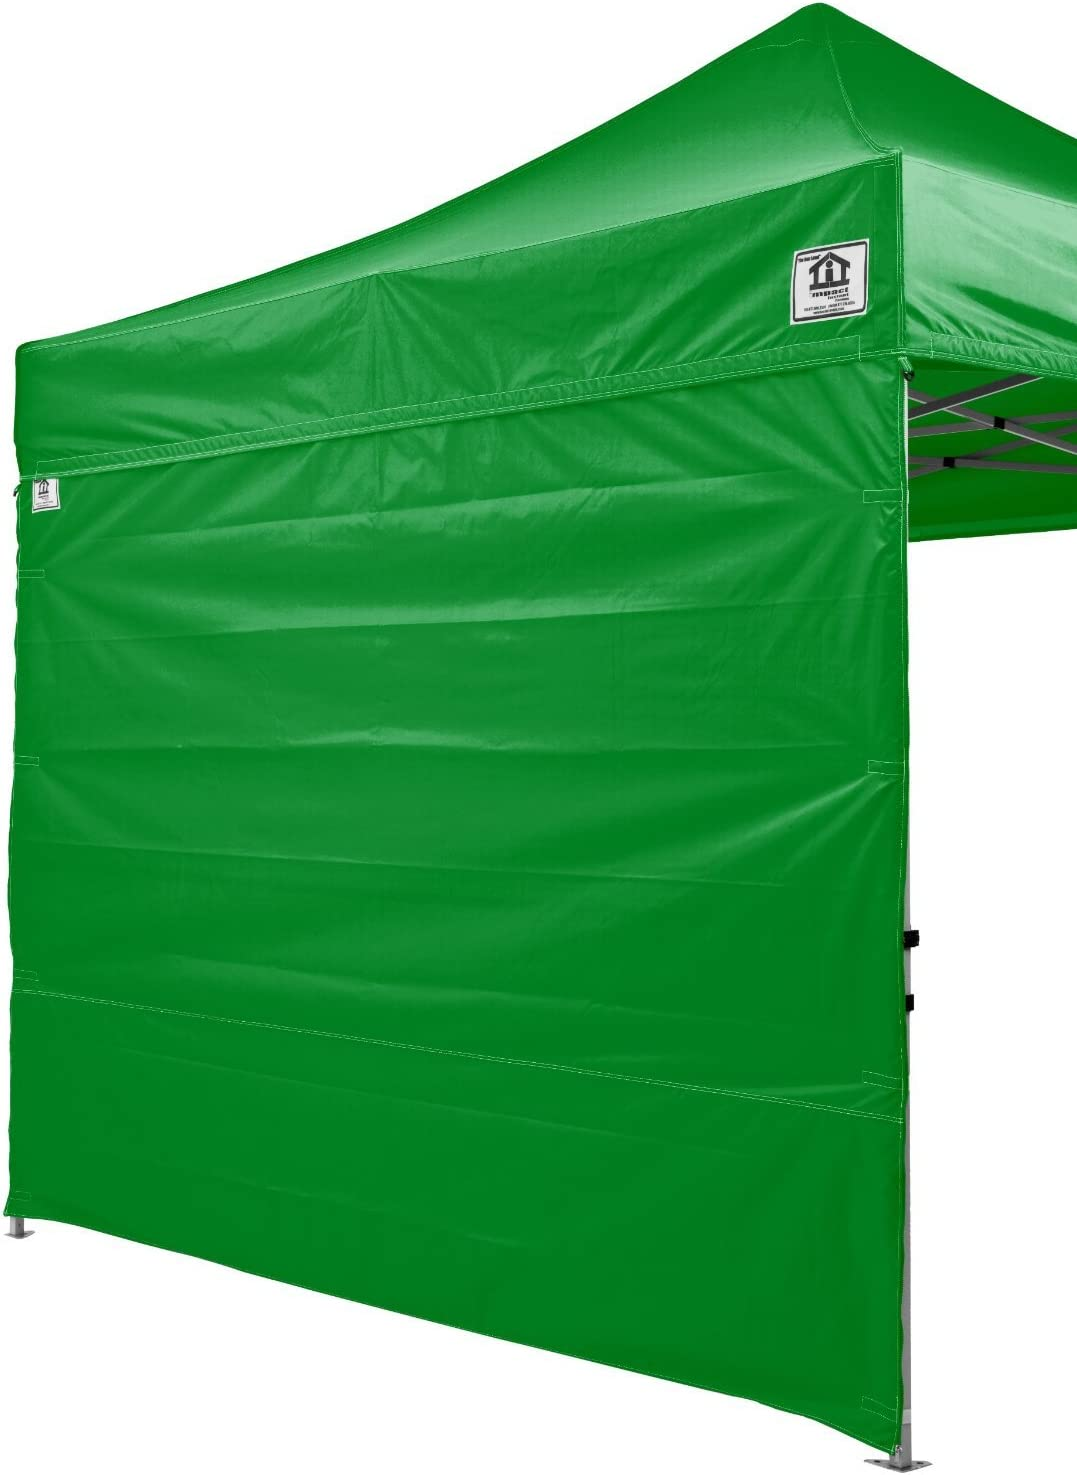 Impact Canopy 10x10 Canopy Tent Solid Sidewalls/White Screen Room Sidewalls Combo Pack (Kelly Green)